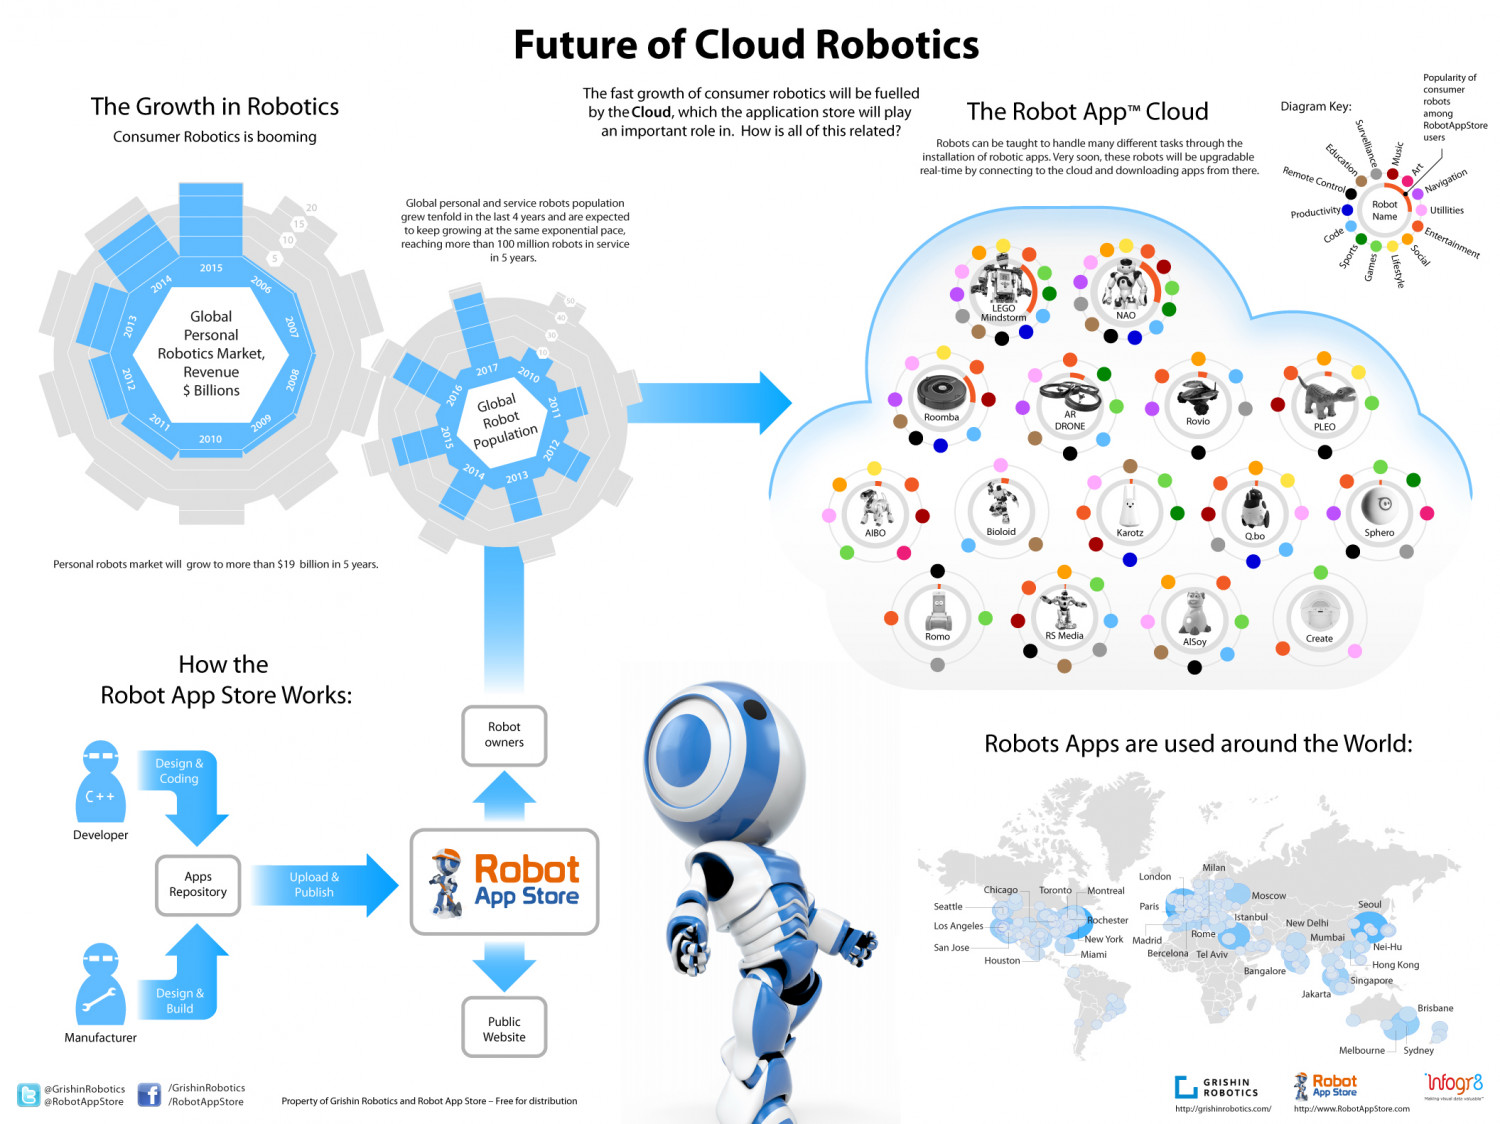 Future of Cloud Robotics Infographic